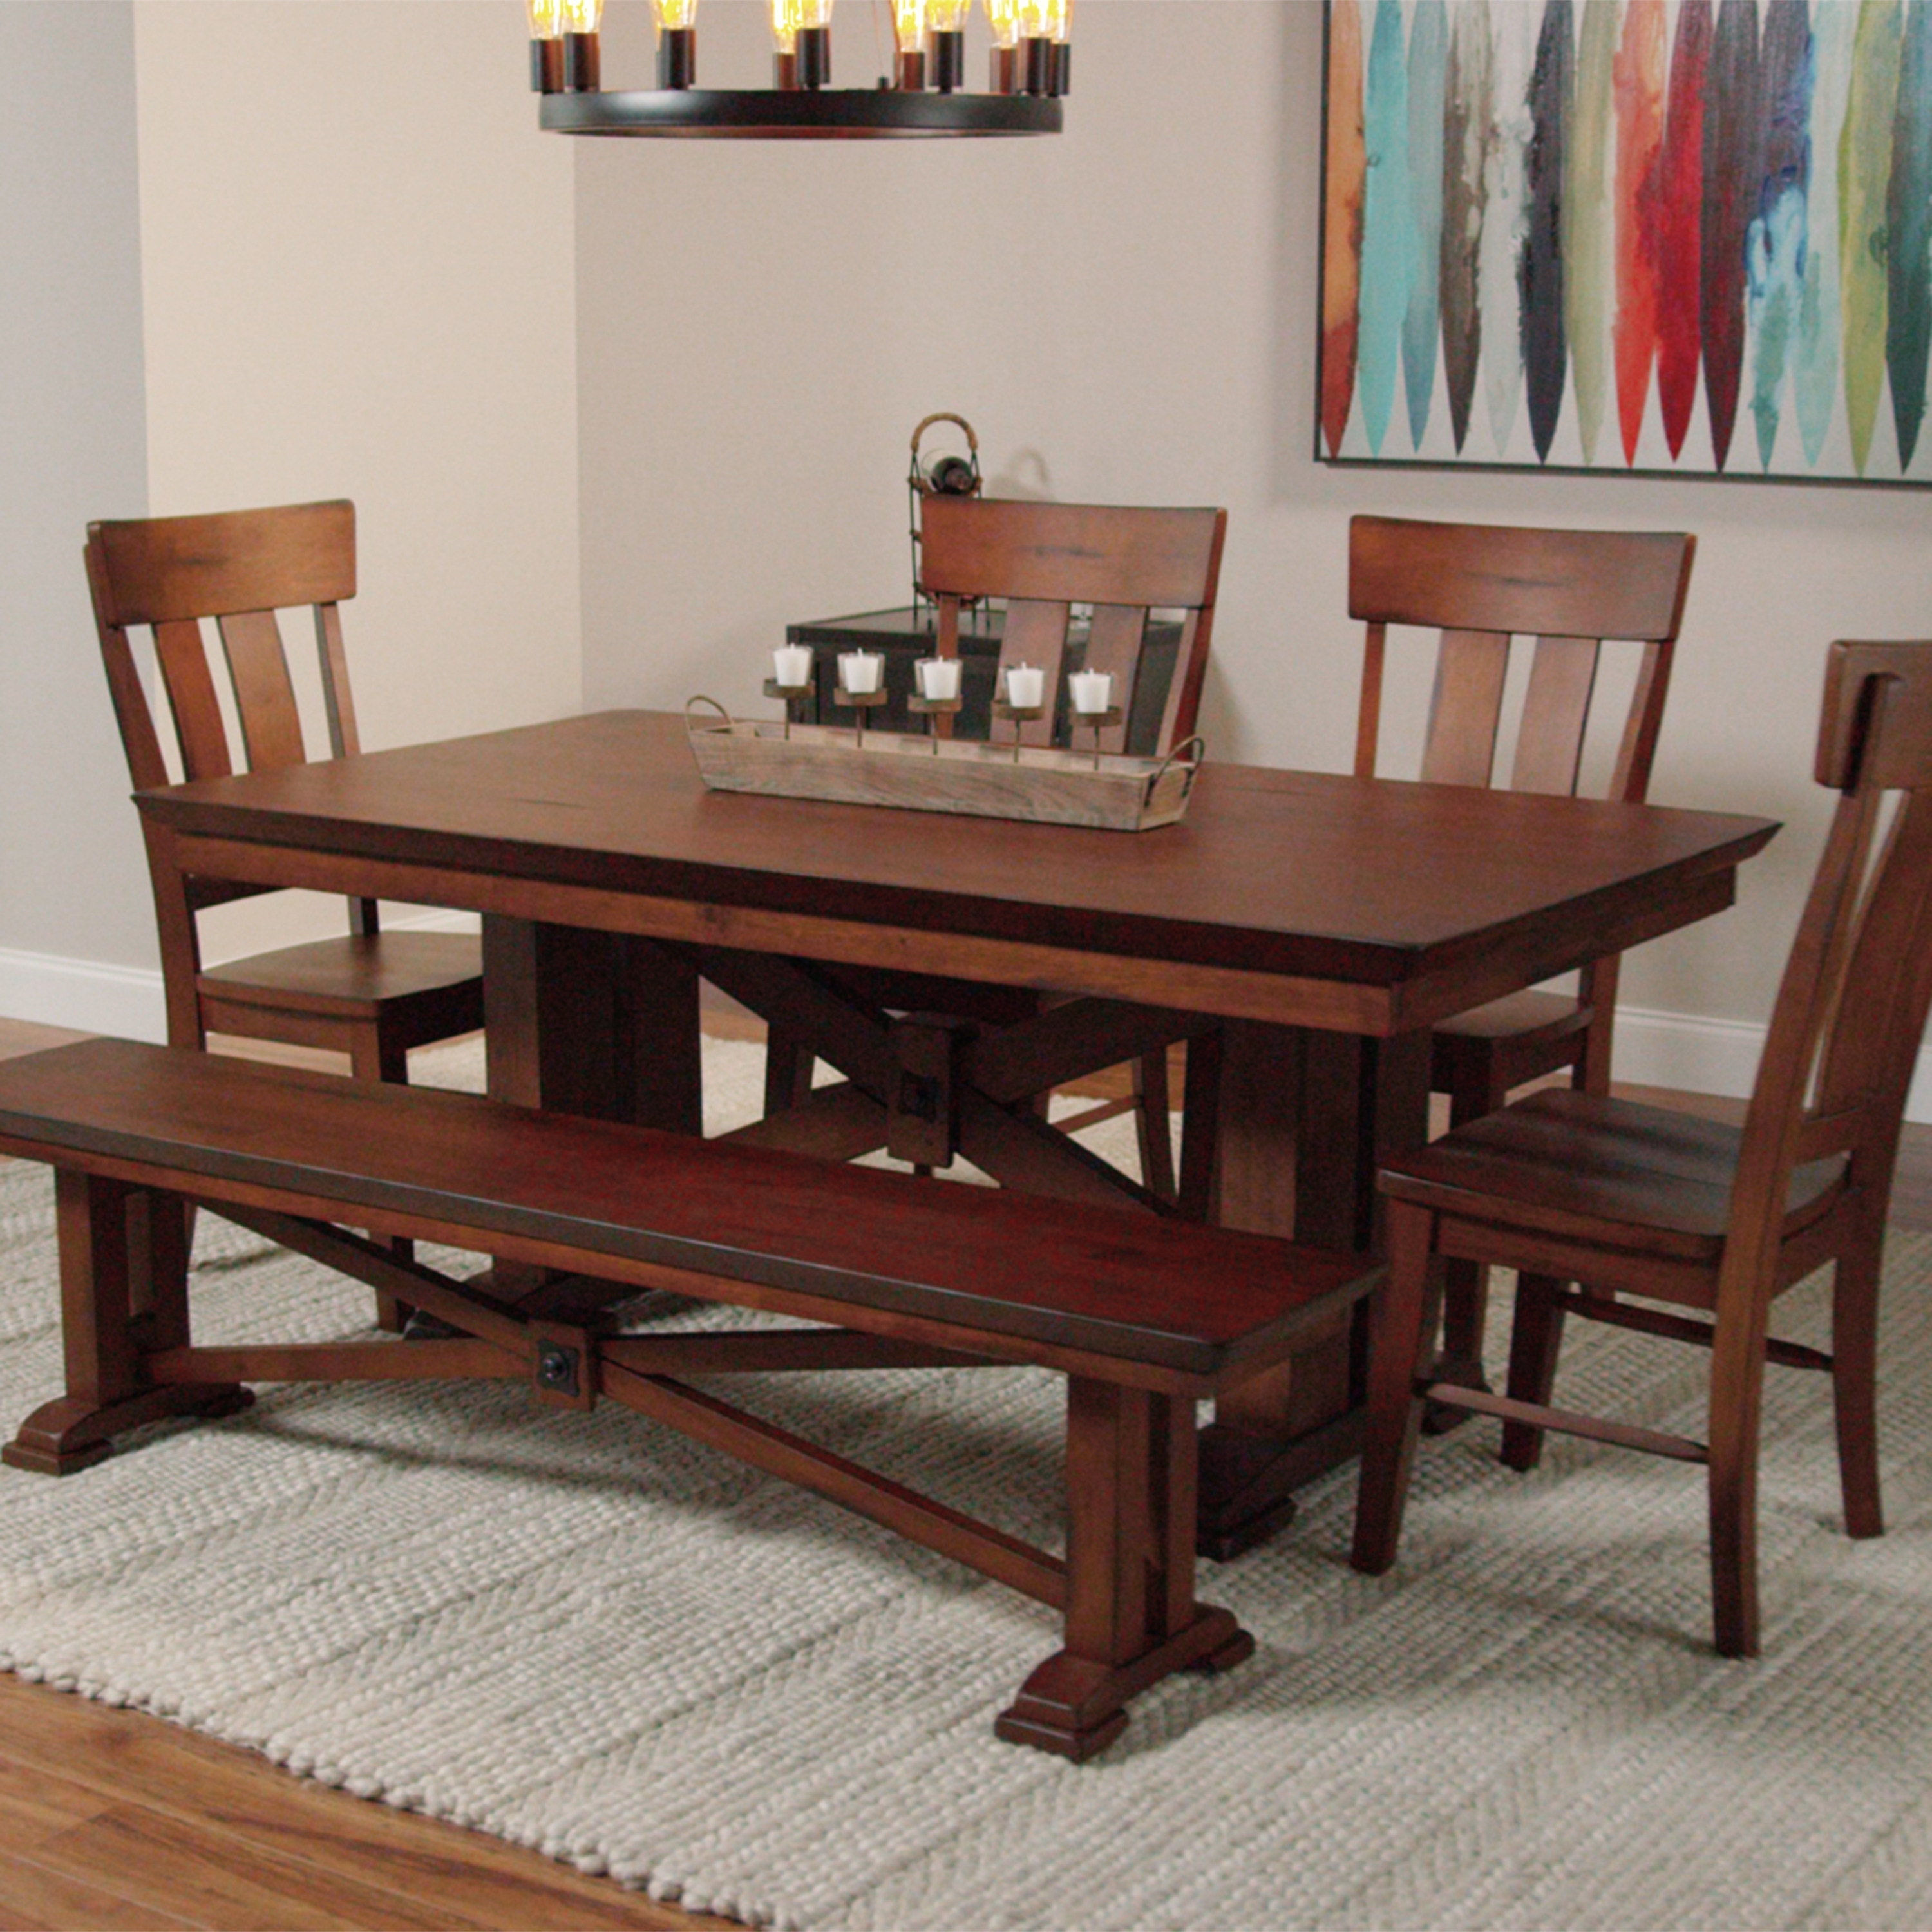 Most Popular The Custom World Market Dining Table For  (View 16 of 25)